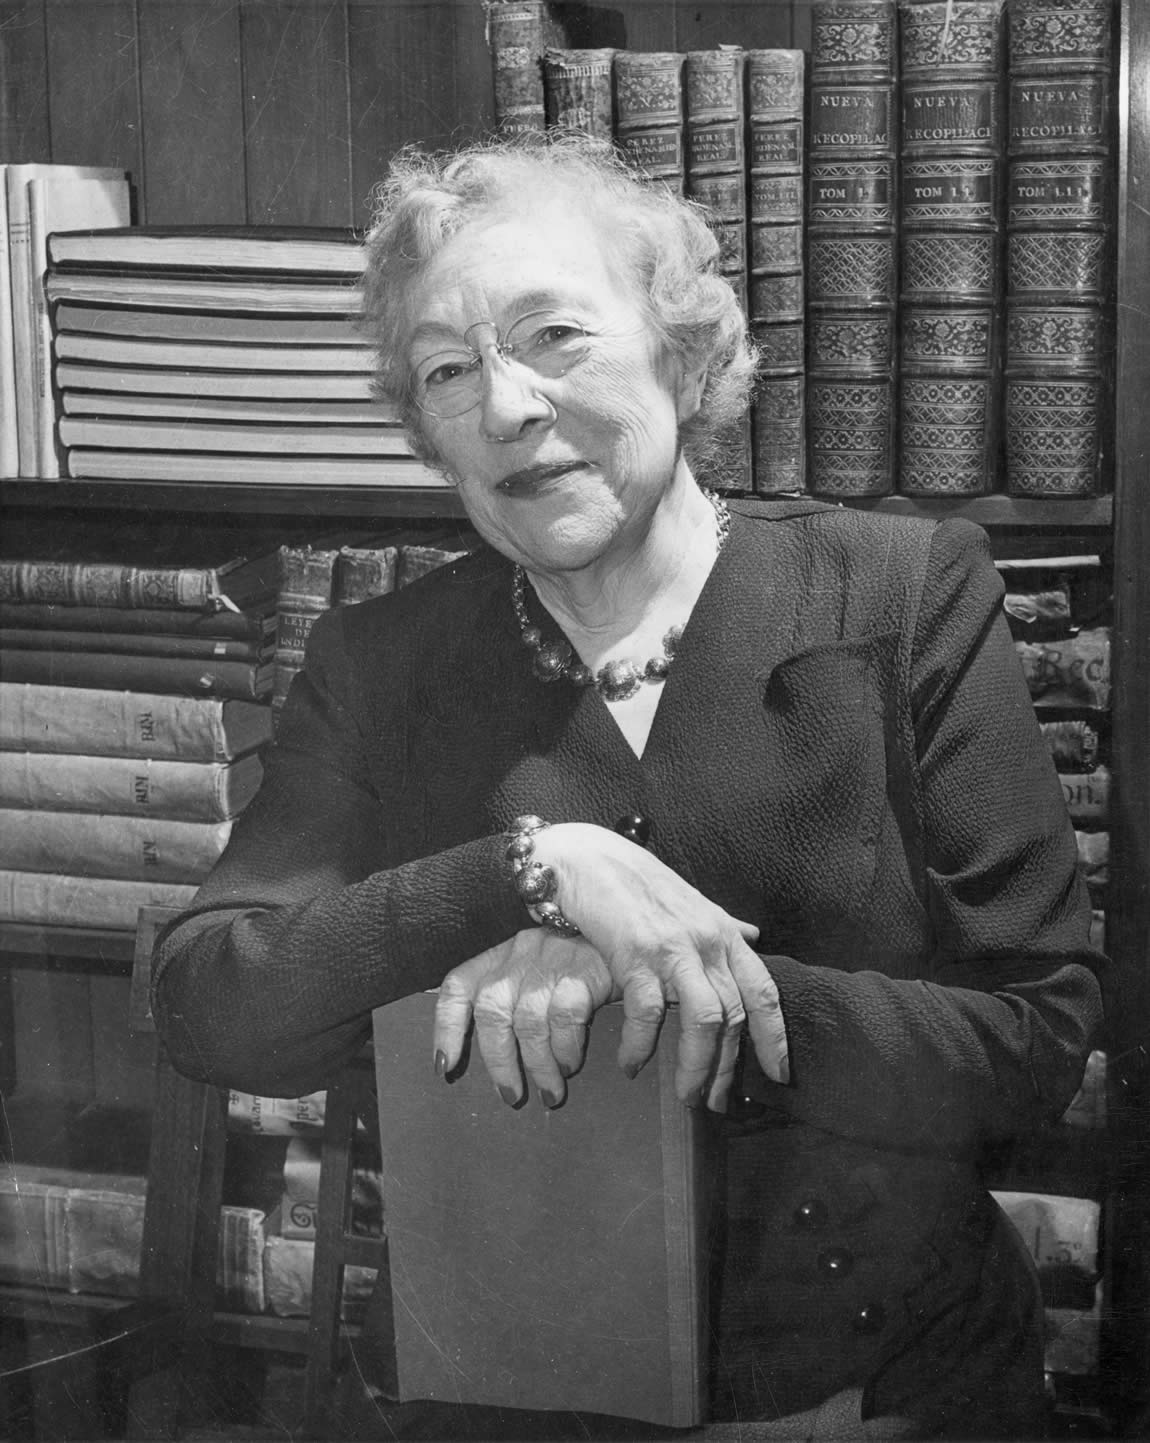 (1930-51) Photo of Mabel R. Gillis, the seventeenth State Librarian